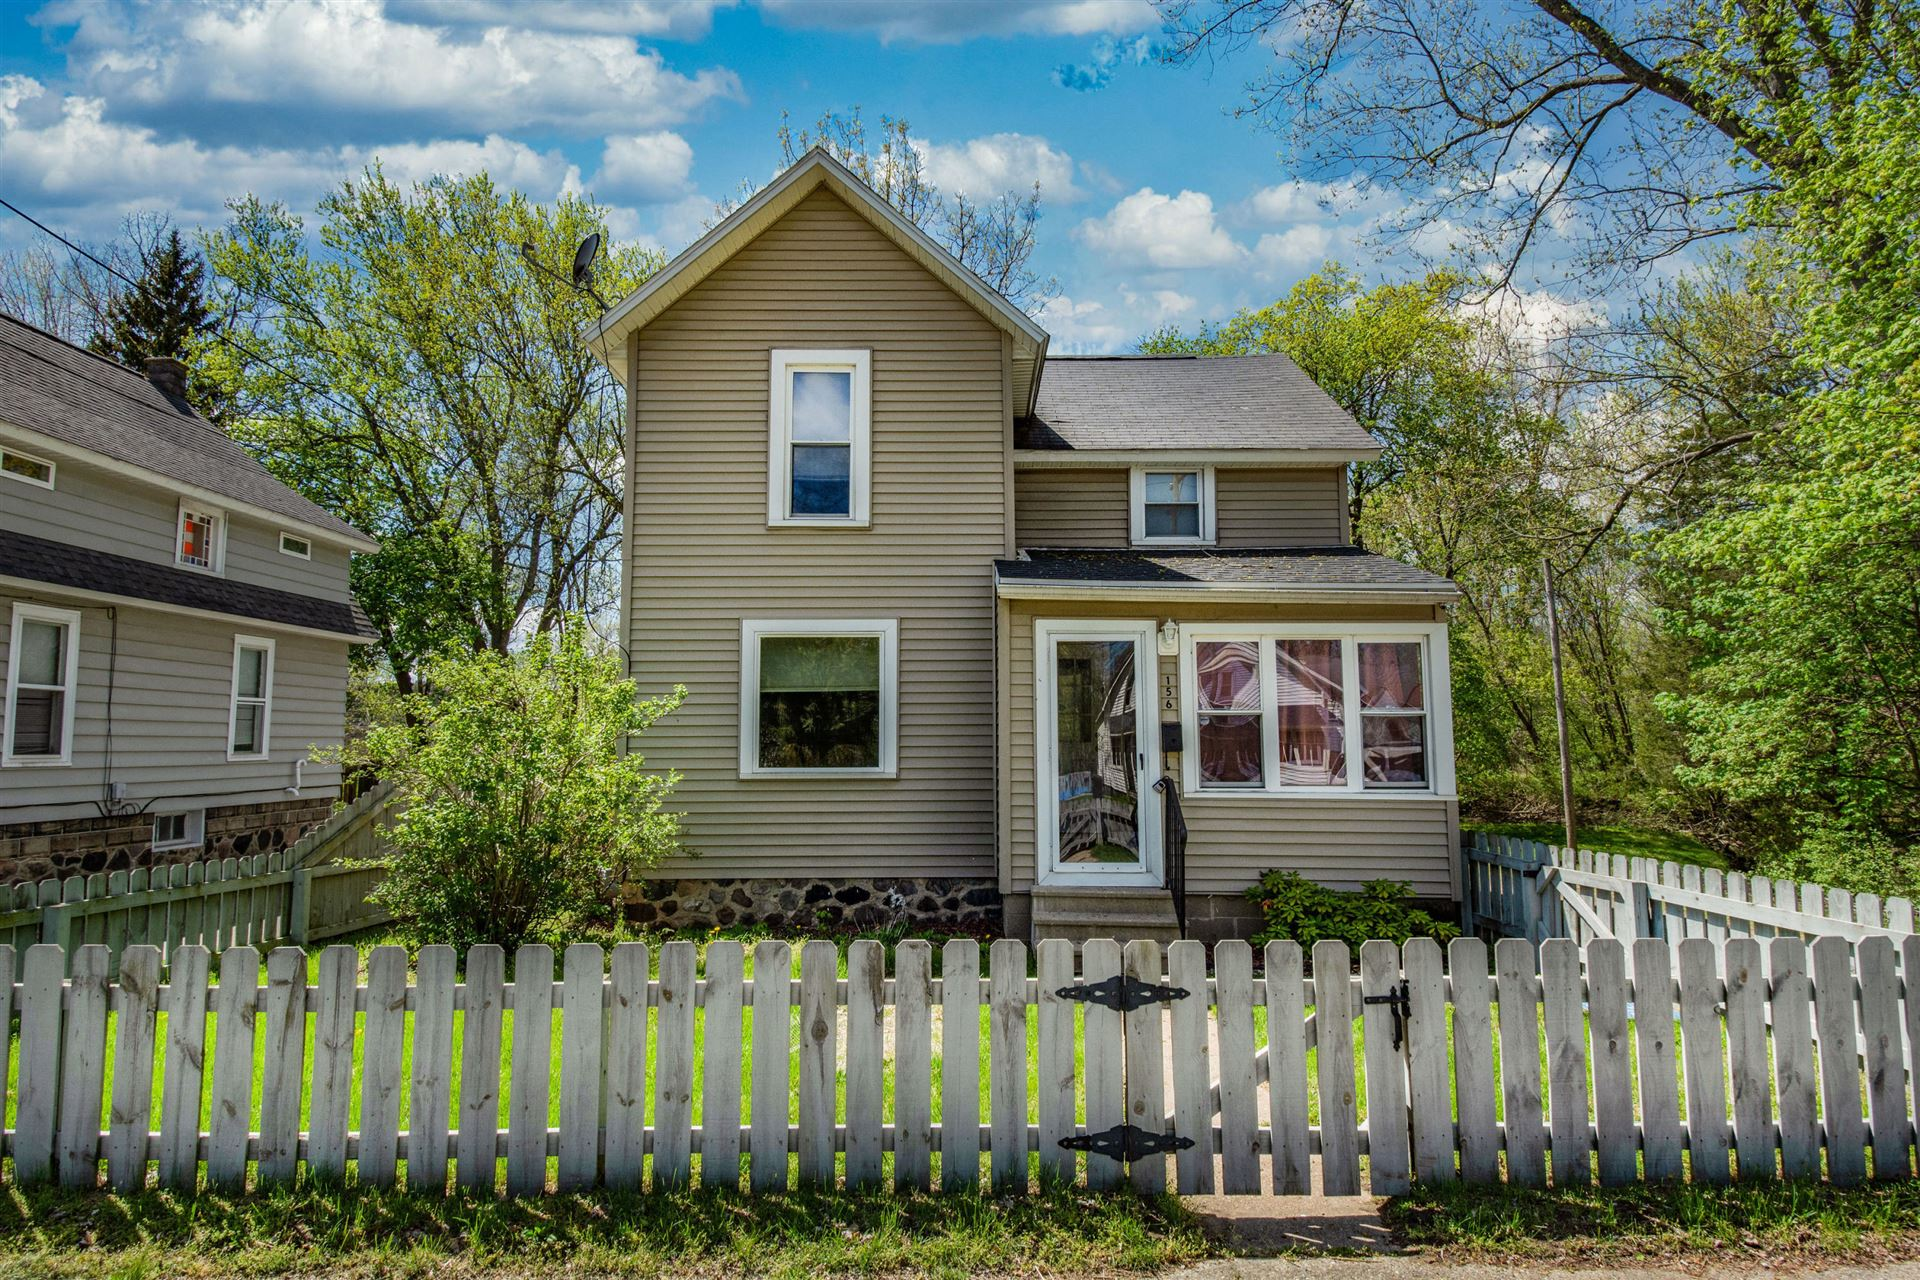 156 N West Street, Hillsdale, MI 49242 - MLS#: 21014980